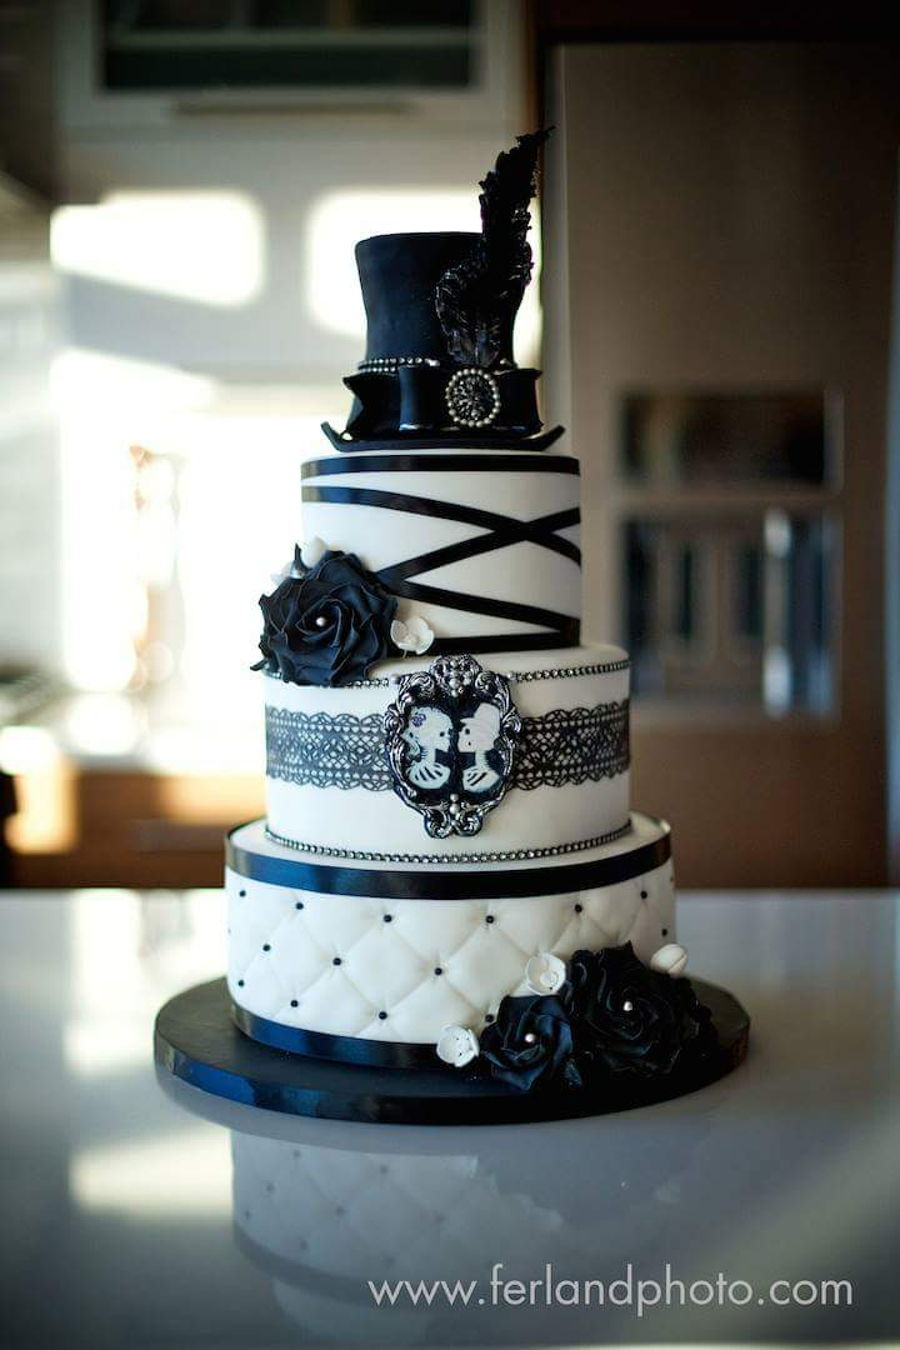 black and white wedding cake. Black Bedroom Furniture Sets. Home Design Ideas